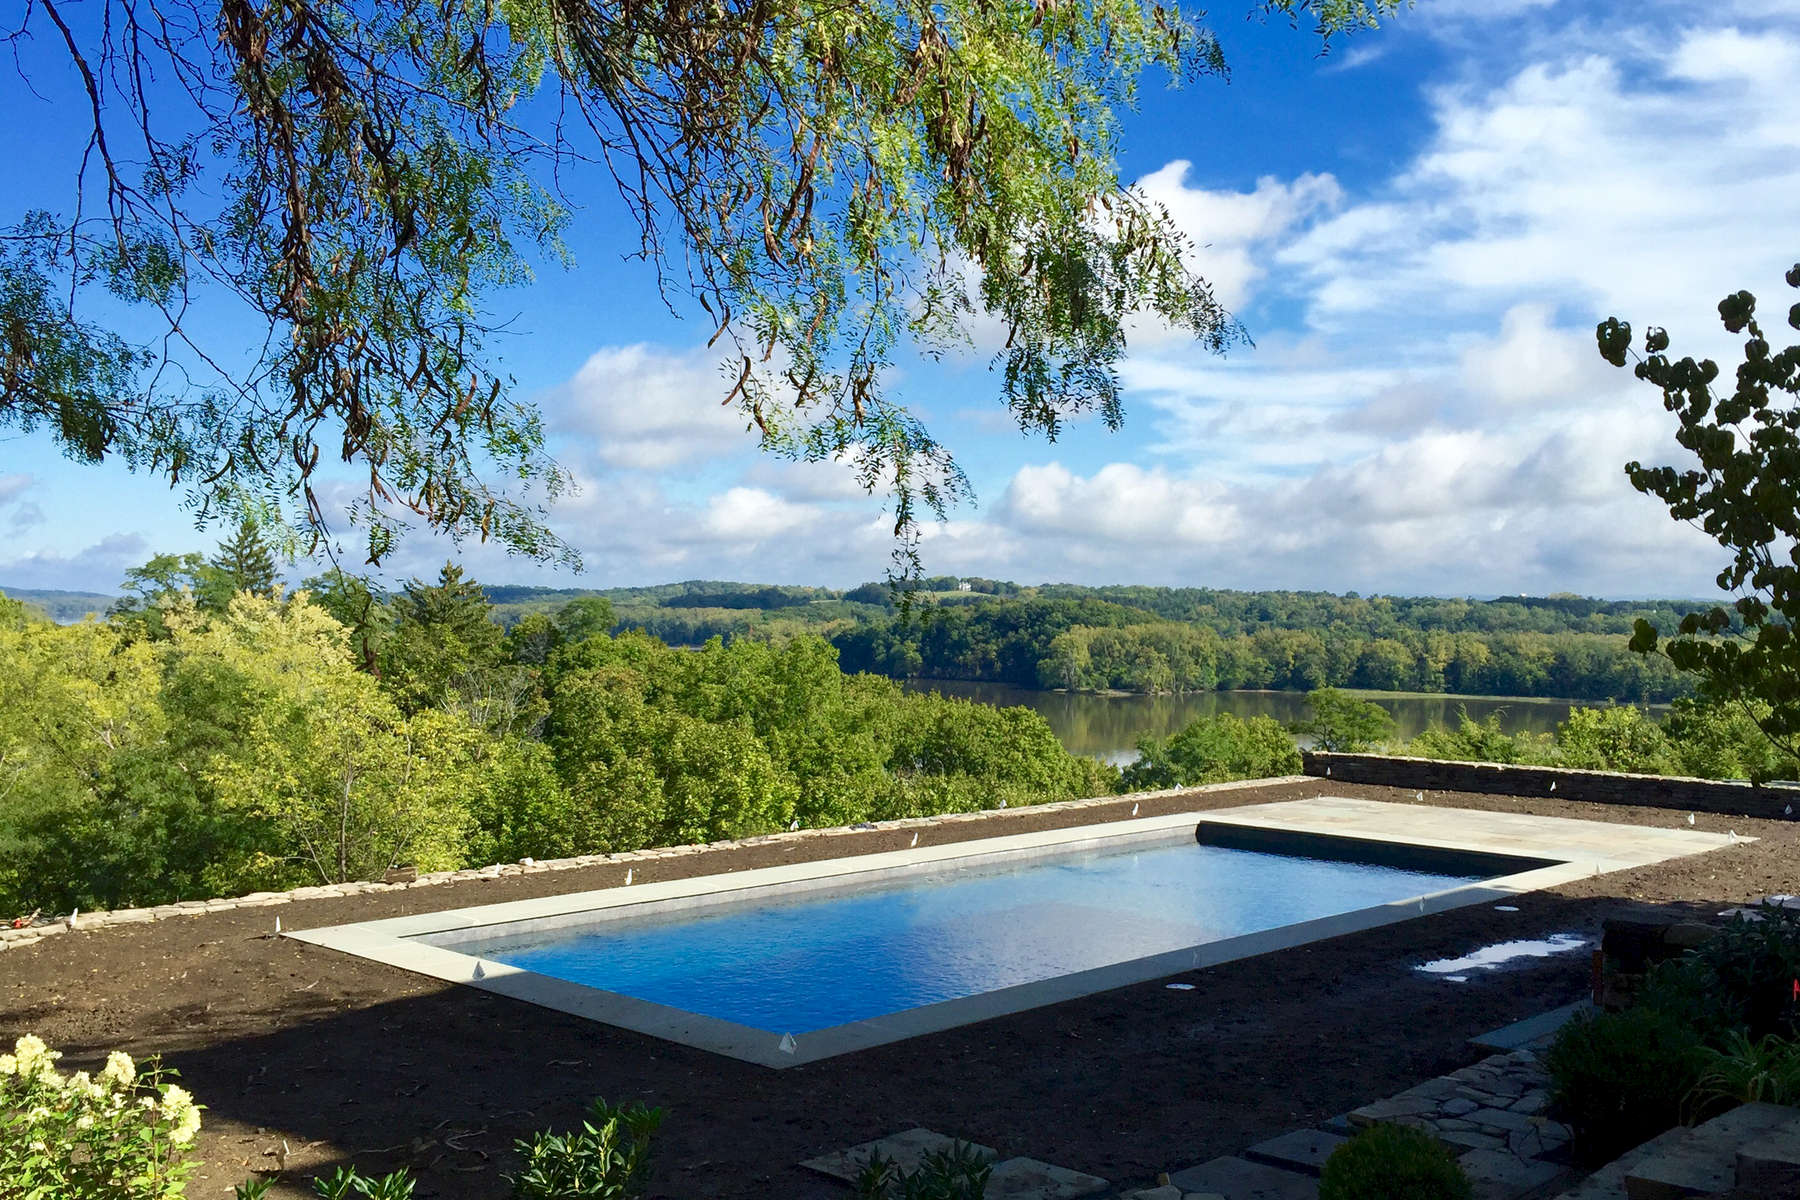 The renovation of this Historic property includes a new pool terrace set into the hillside to take advantage of the beautiful views to the Hudson River.